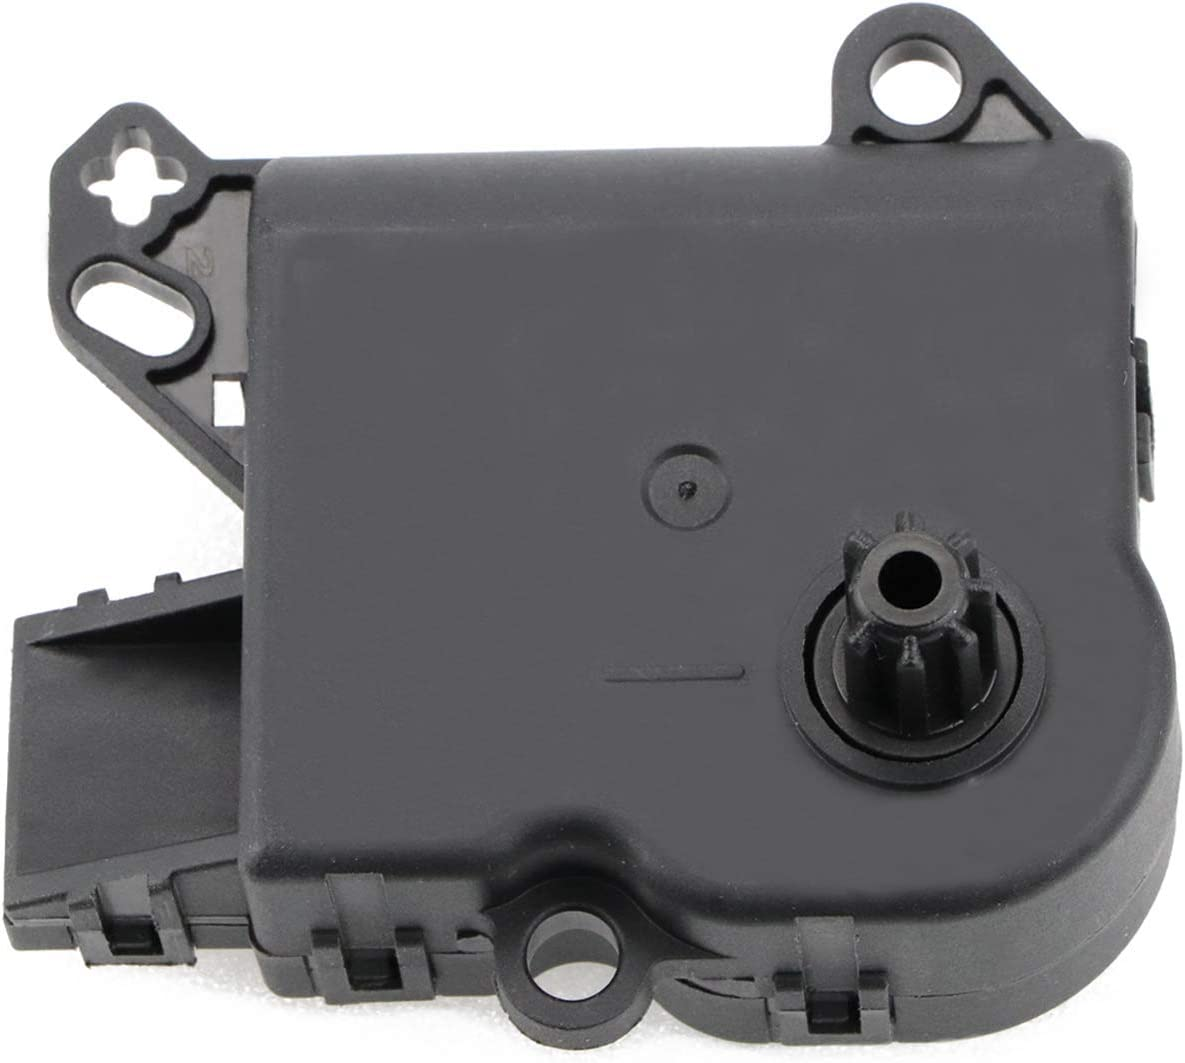 Dantoo Blend Door Actuator - Replaces AA5Z-19E616-C, YH-1779, 604-234, AA5Z19E616B,- Fits Ford Explorer 2011-2019, Ford Taurus 2008-2019, Ford Flex 2011-2019, Lincoln MKS and MKT